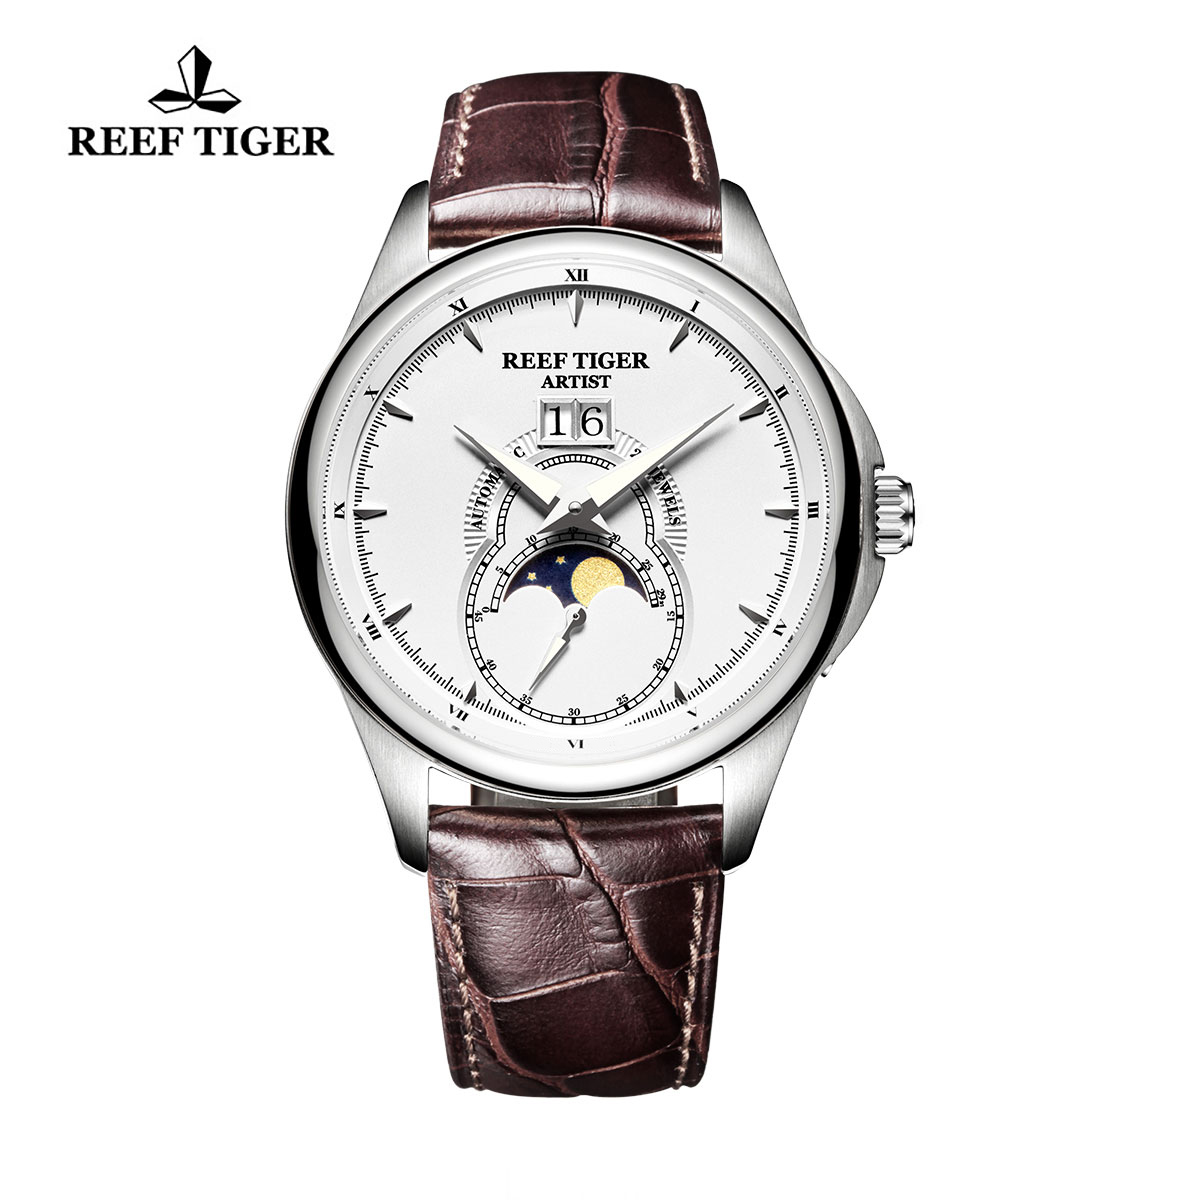 Reef Tiger Knighthood Casual Watch with Dual Calendar White Dial Steel Case RGA1928-YWB